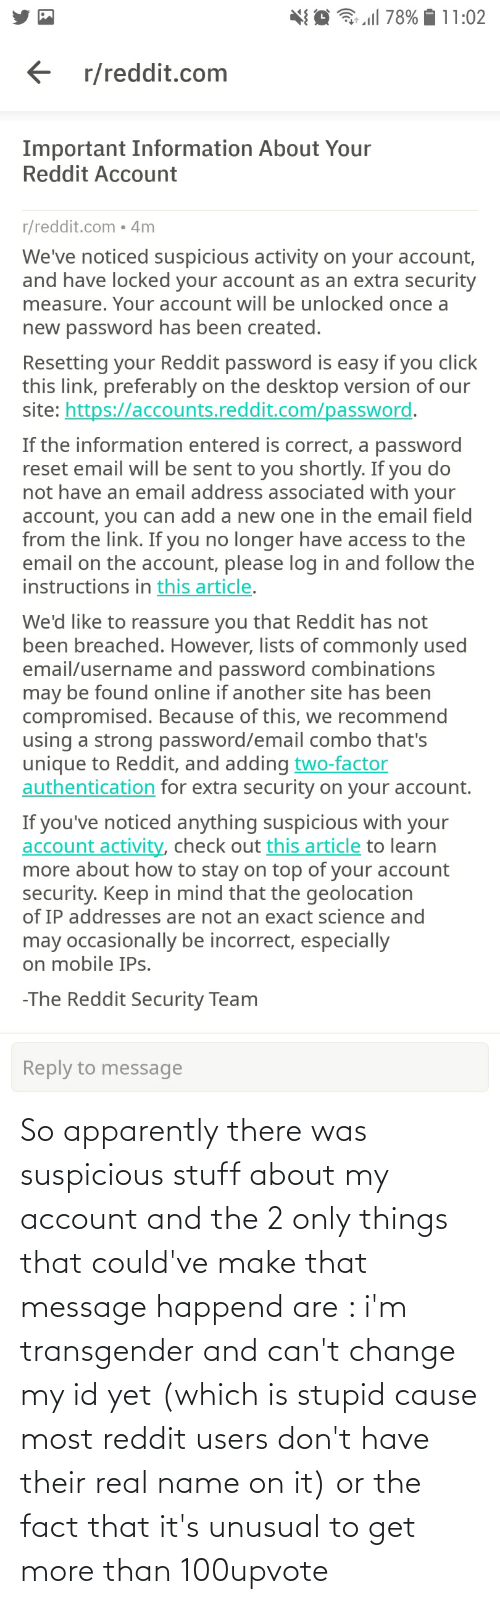 Followers told me to make a Reddit account so I could